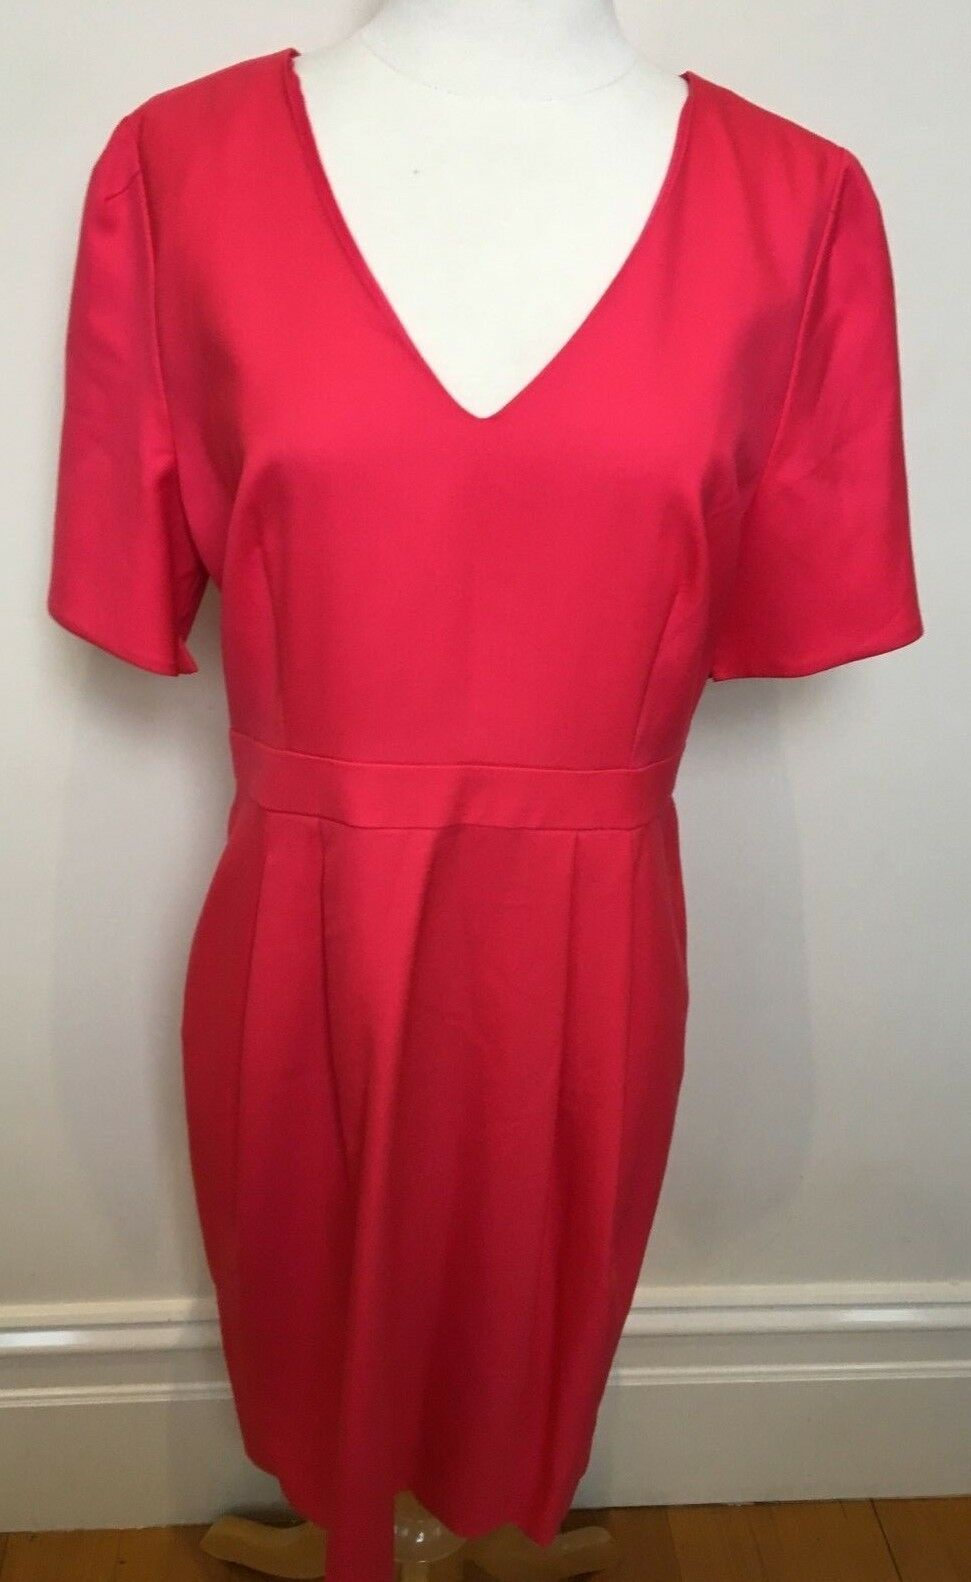 J CREW Candy Pink 100% Fine Wool Short Sleeve Fully Lined Fitted Waist Dress 10